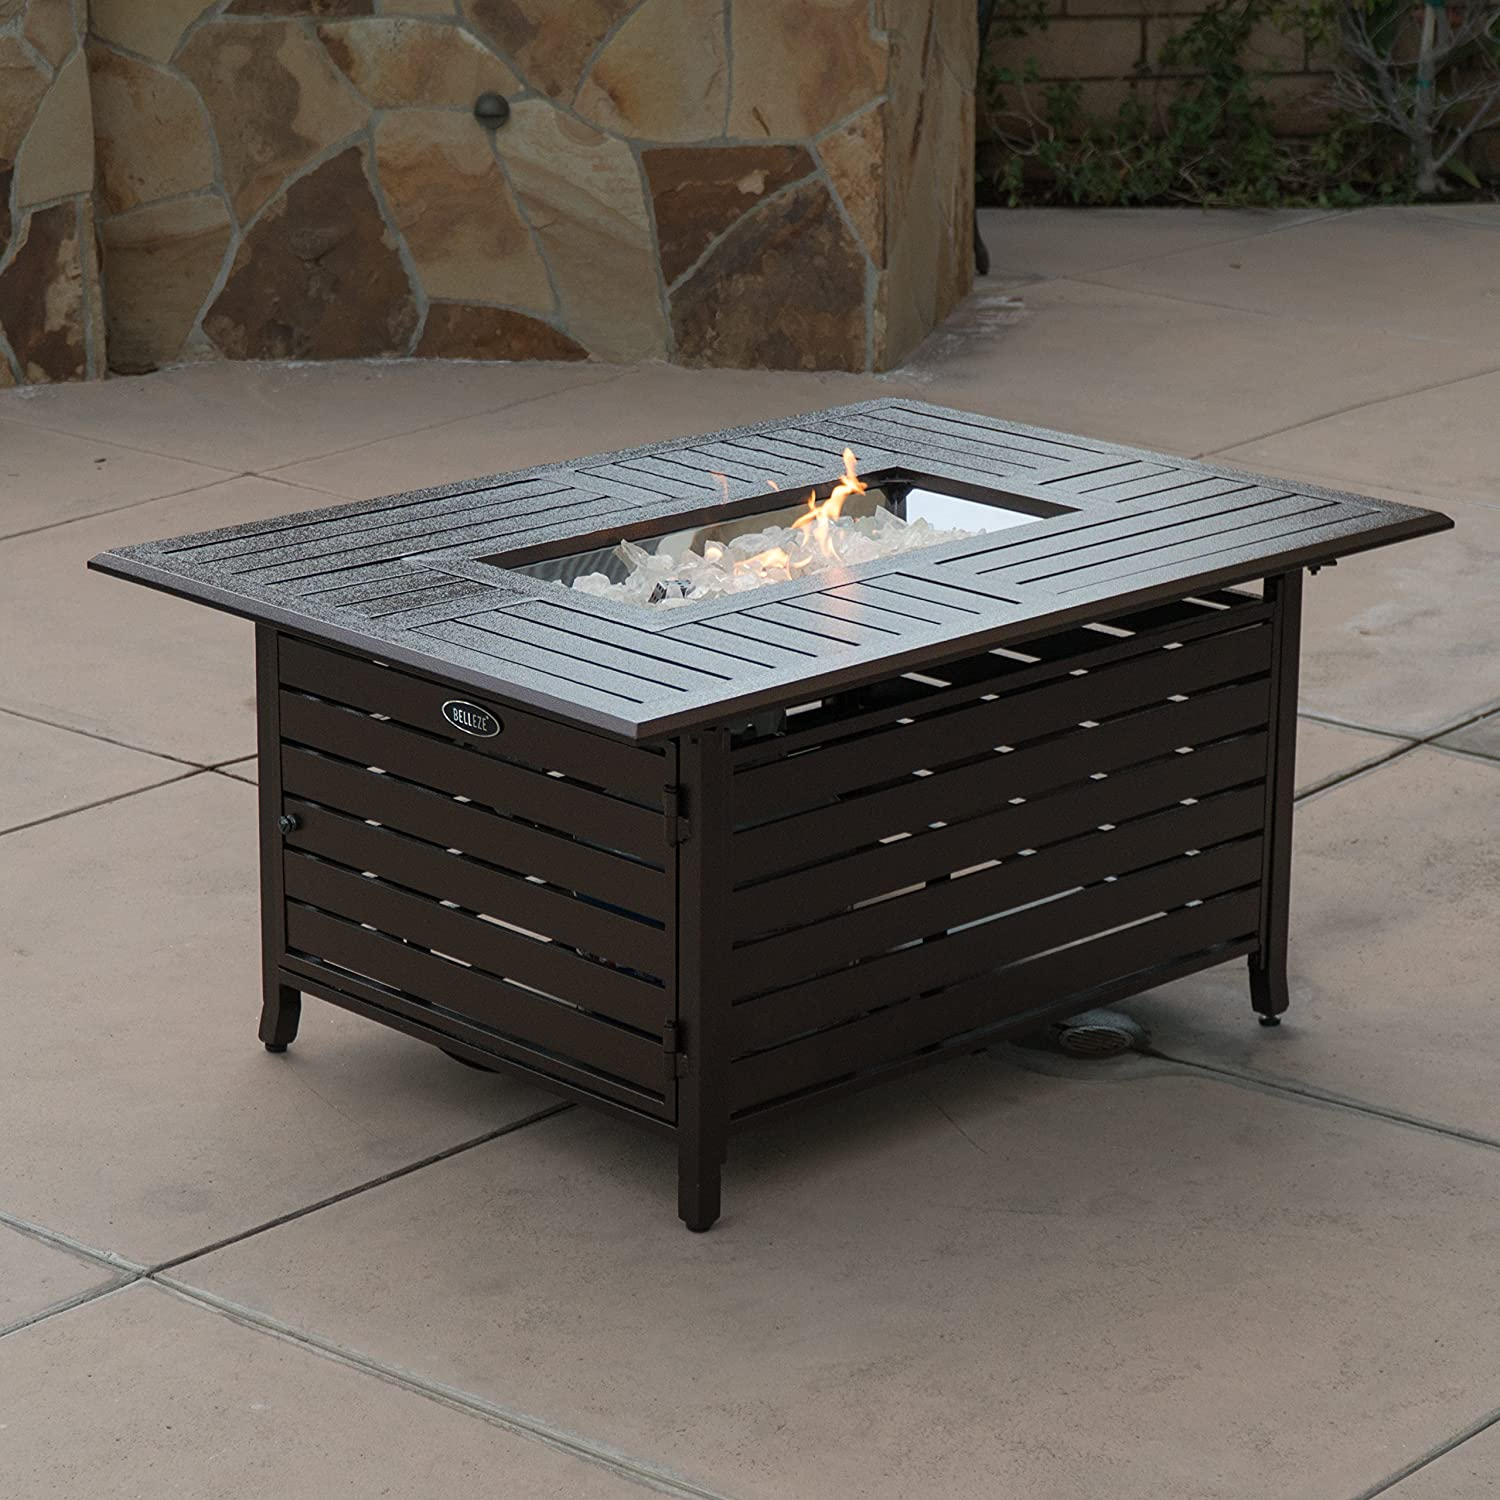 Rectangular Fire Pit With The Elegant Sense